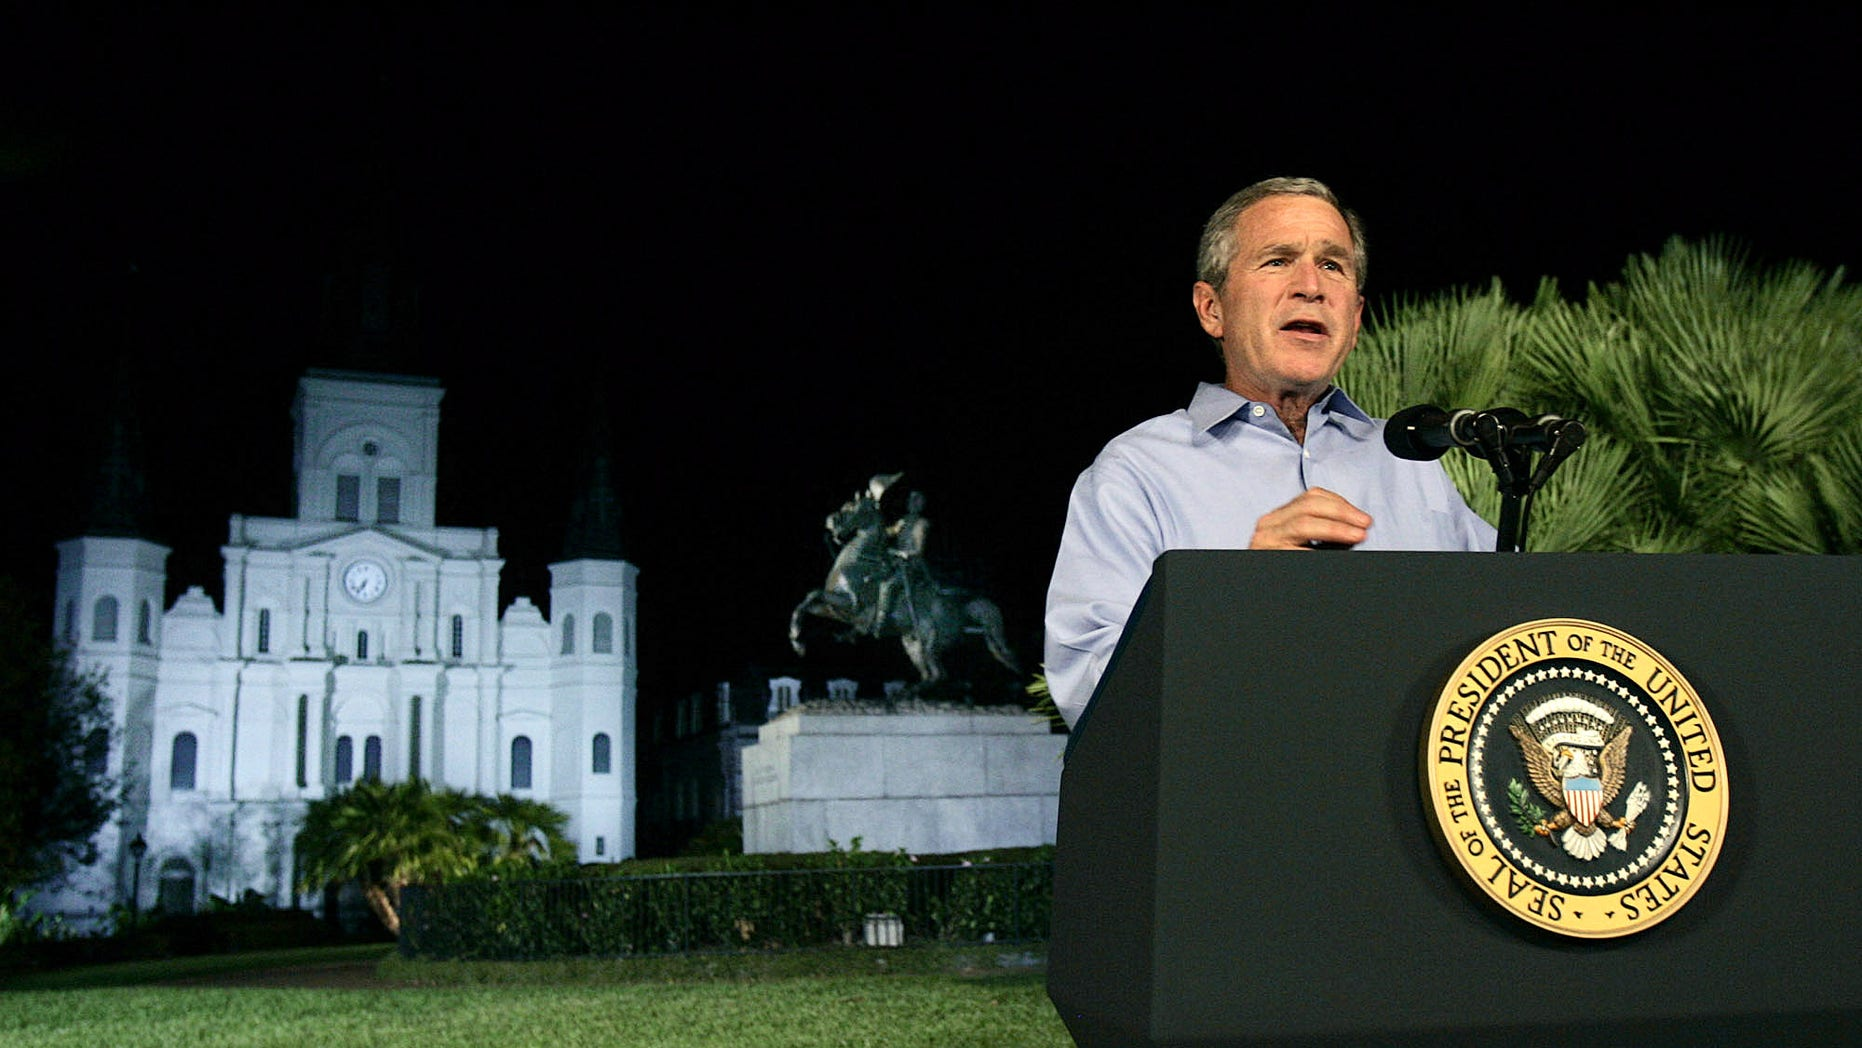 FILE -- Sept. 15, 2005: President Bush speaks from Jackson Square in New Orleans where he announced a new reconstruction plan to help rebuild the area damaged by Hurricane Katrina.